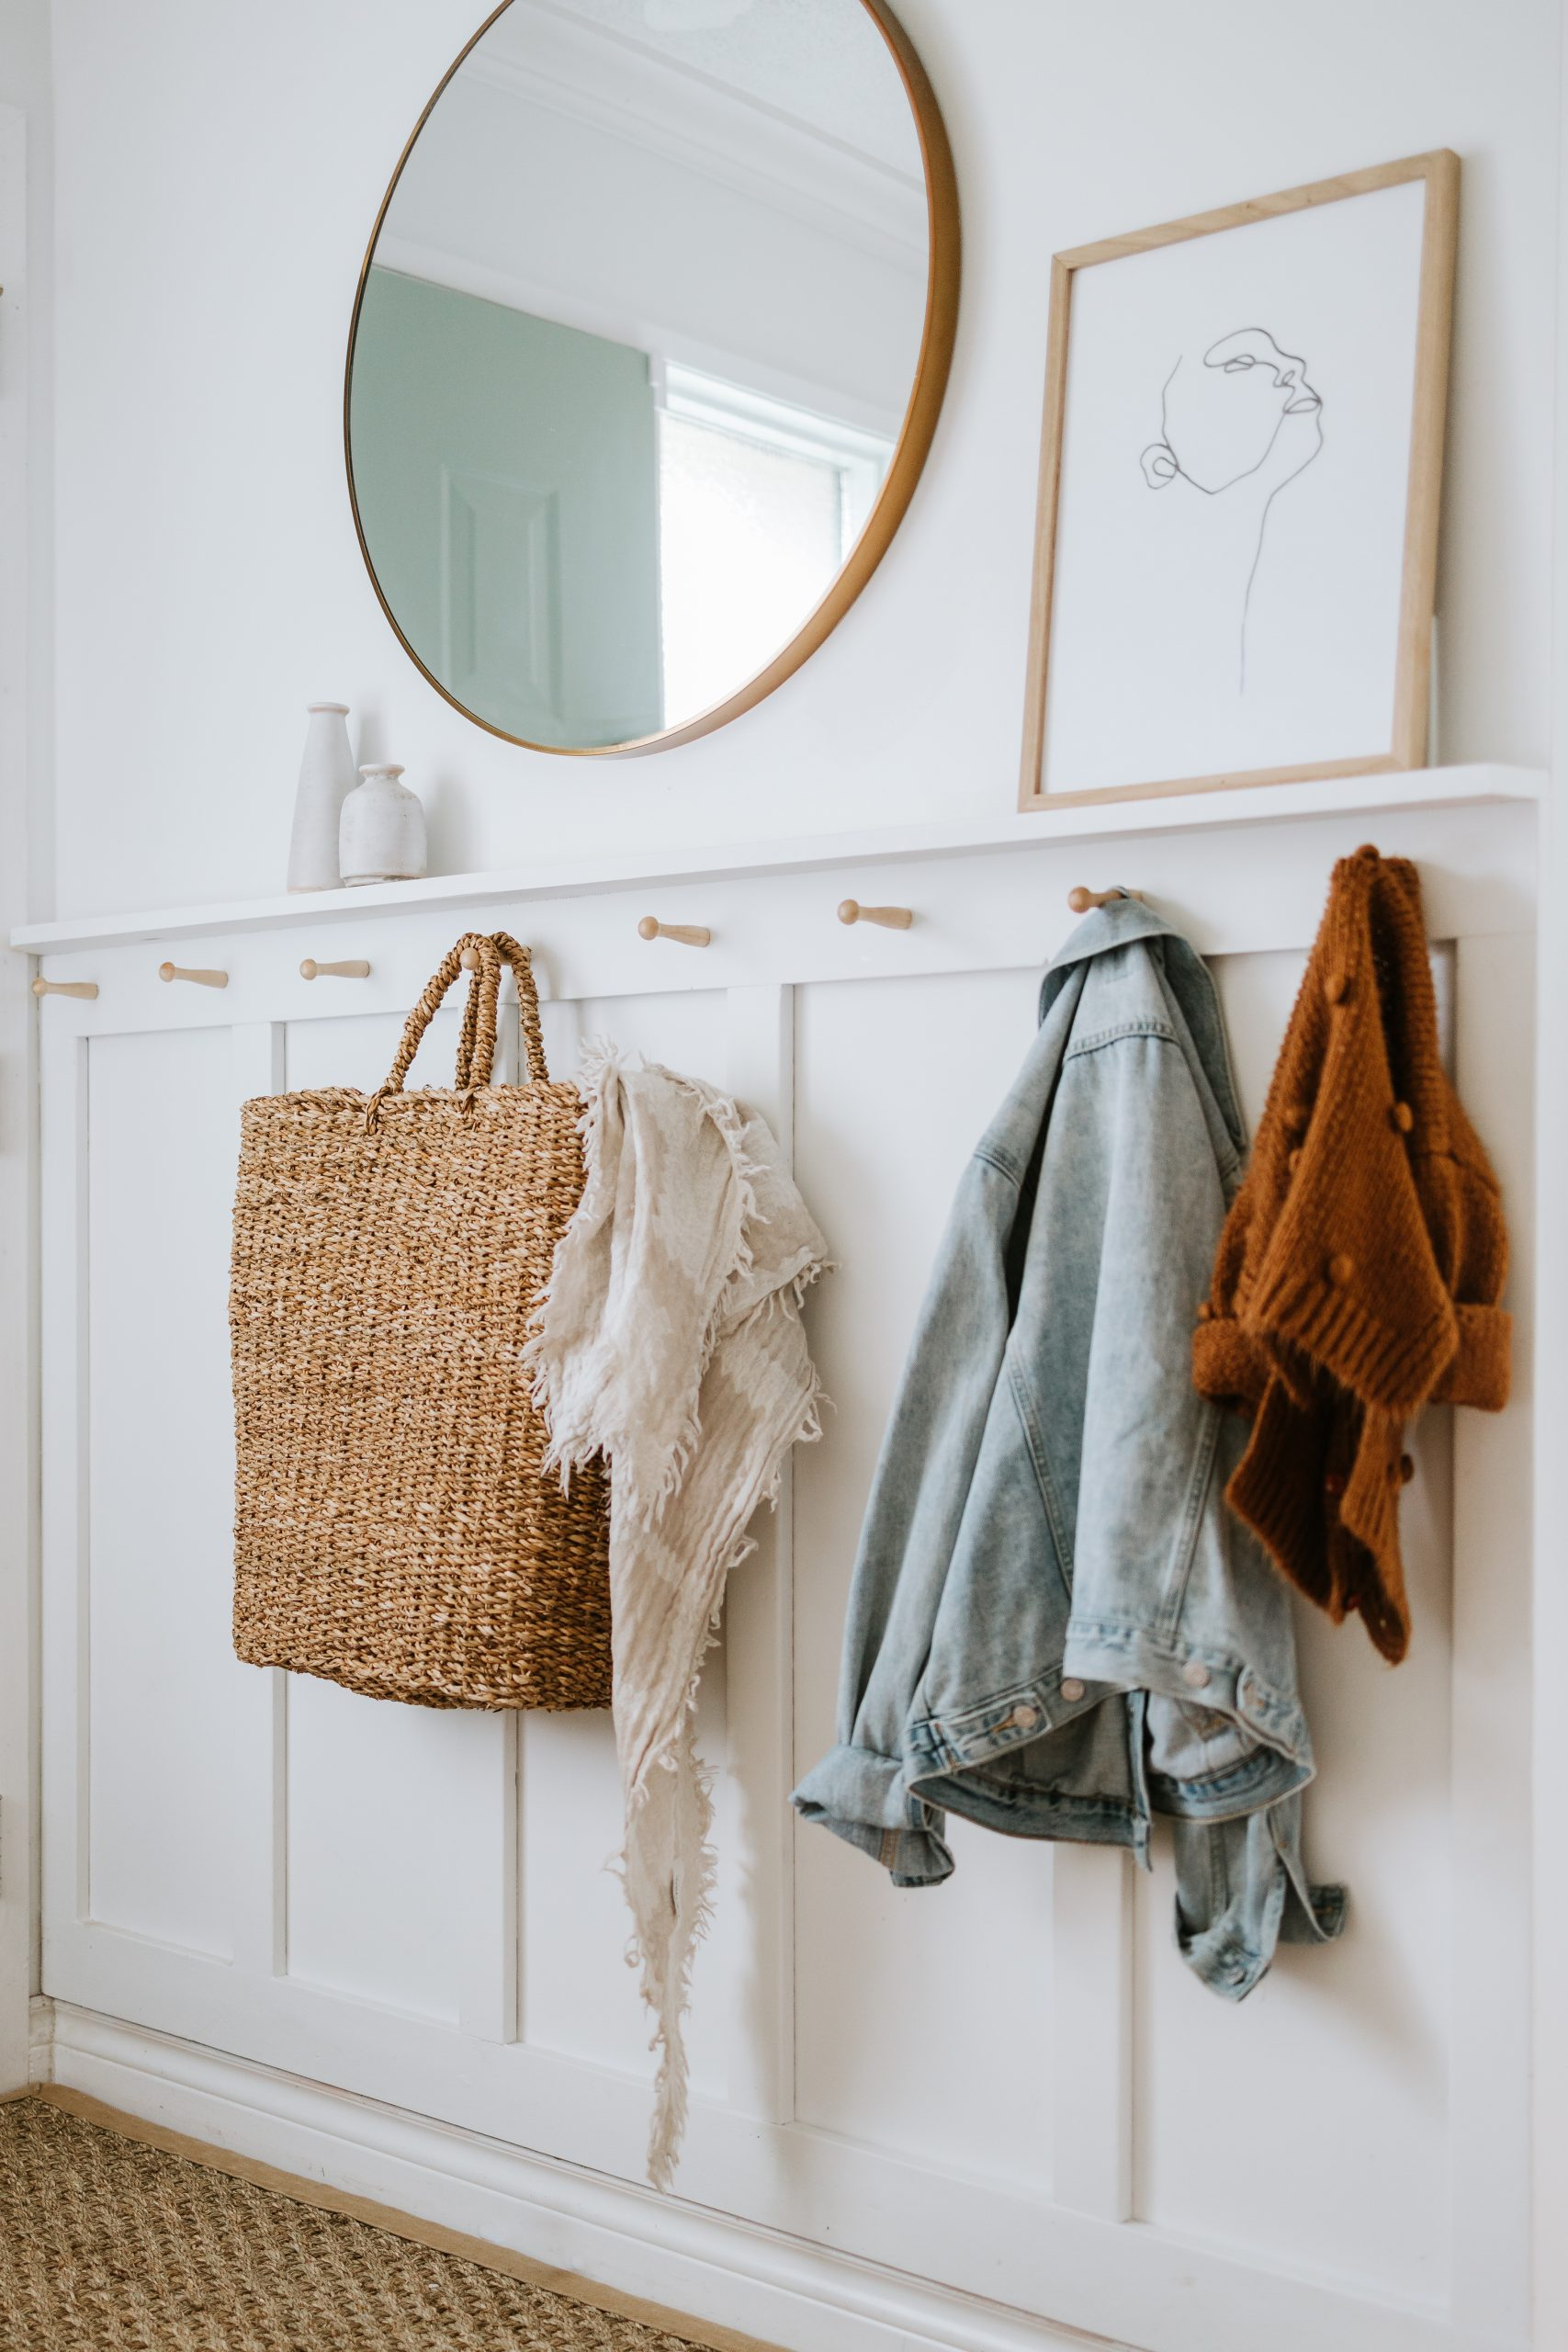 Five Storage Solutions For Small Homes. Family of Six Living In 1,300 Square Feet and How We Store All Our Toys, Clothes and Food. Storage Solutions